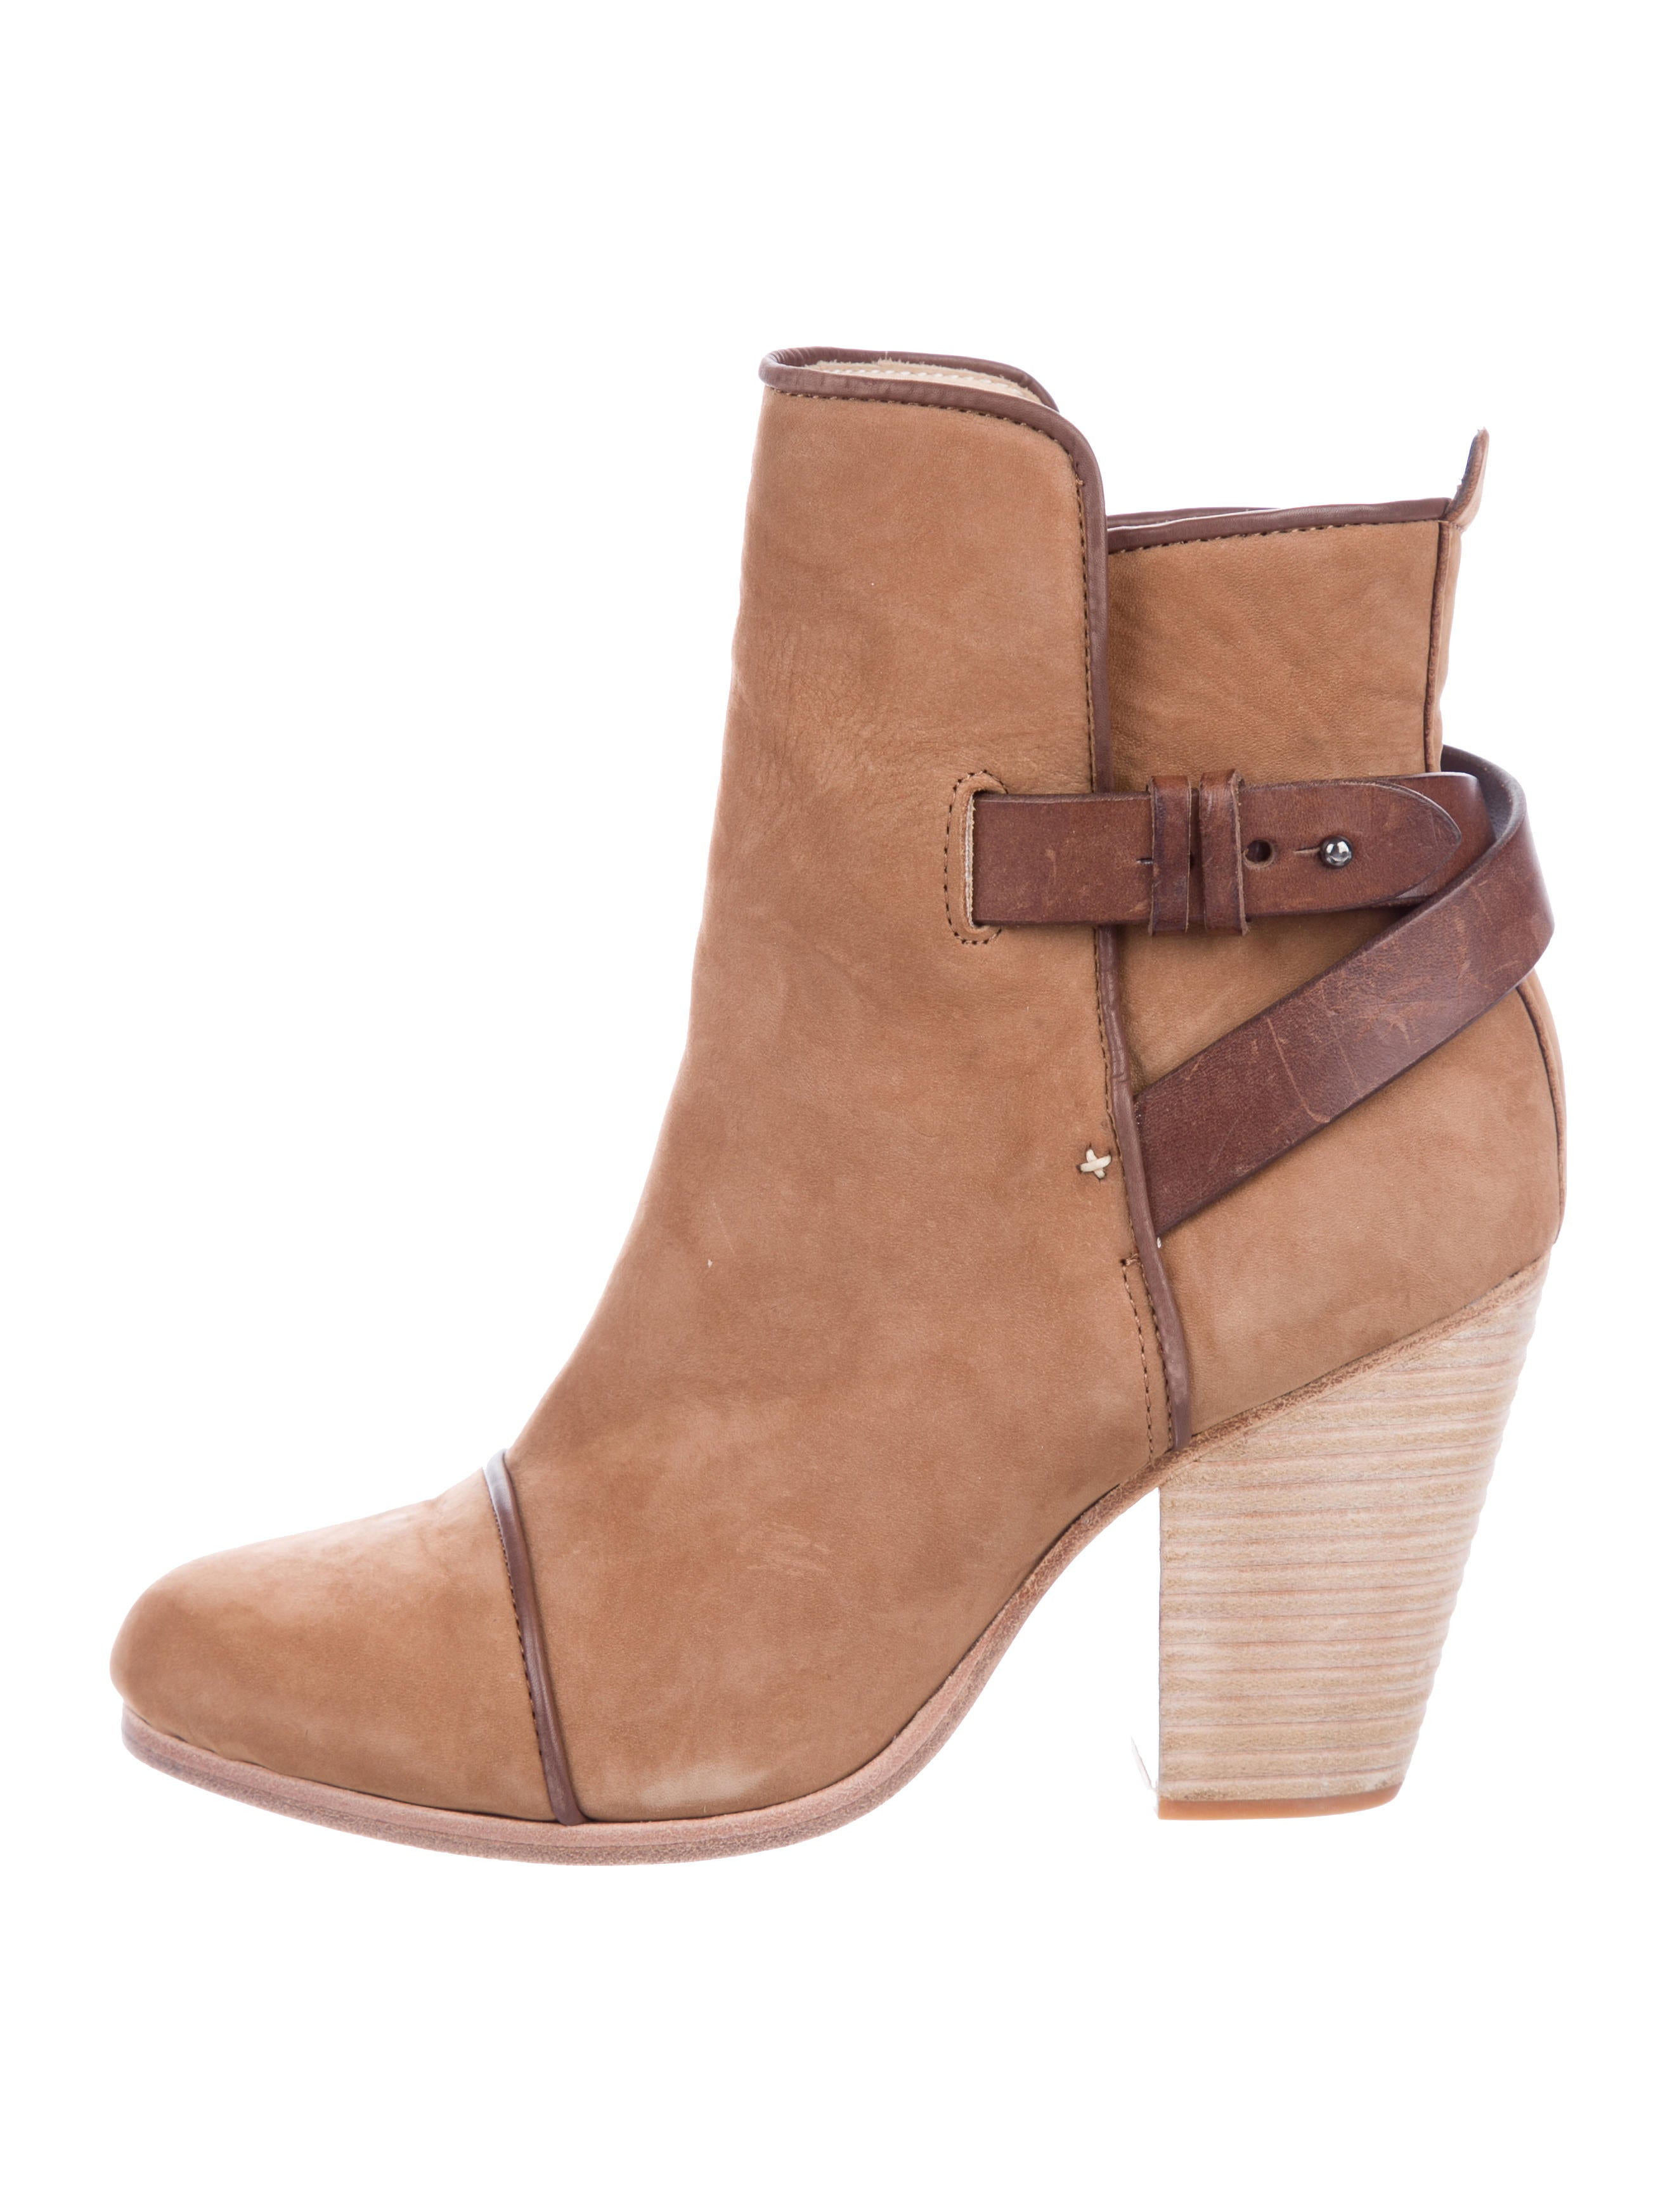 discount recommend Rag & Bone Kinsey Round-Toe Ankle Boots get authentic eQdFpifWA